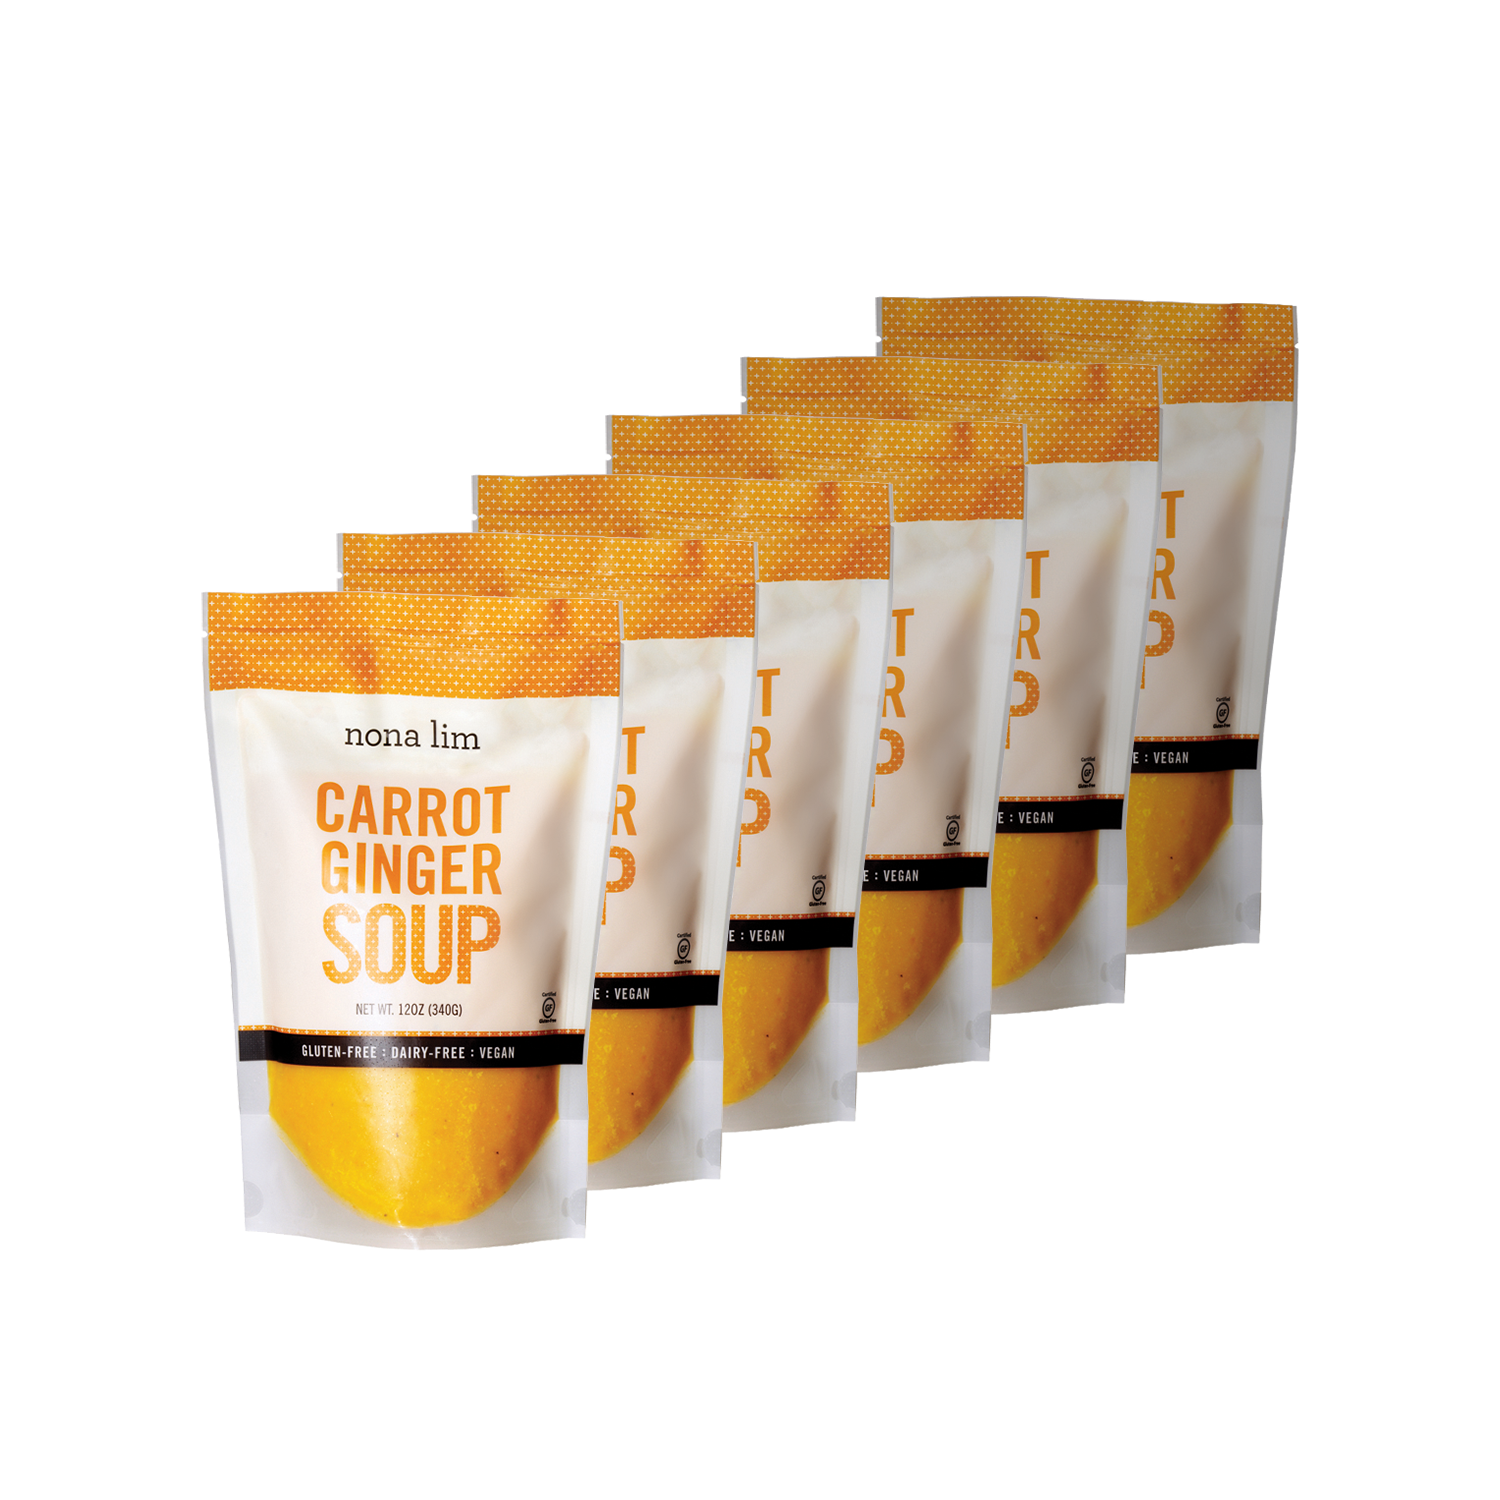 Nona Lim Carrot Ginger Soup 6 Pouches